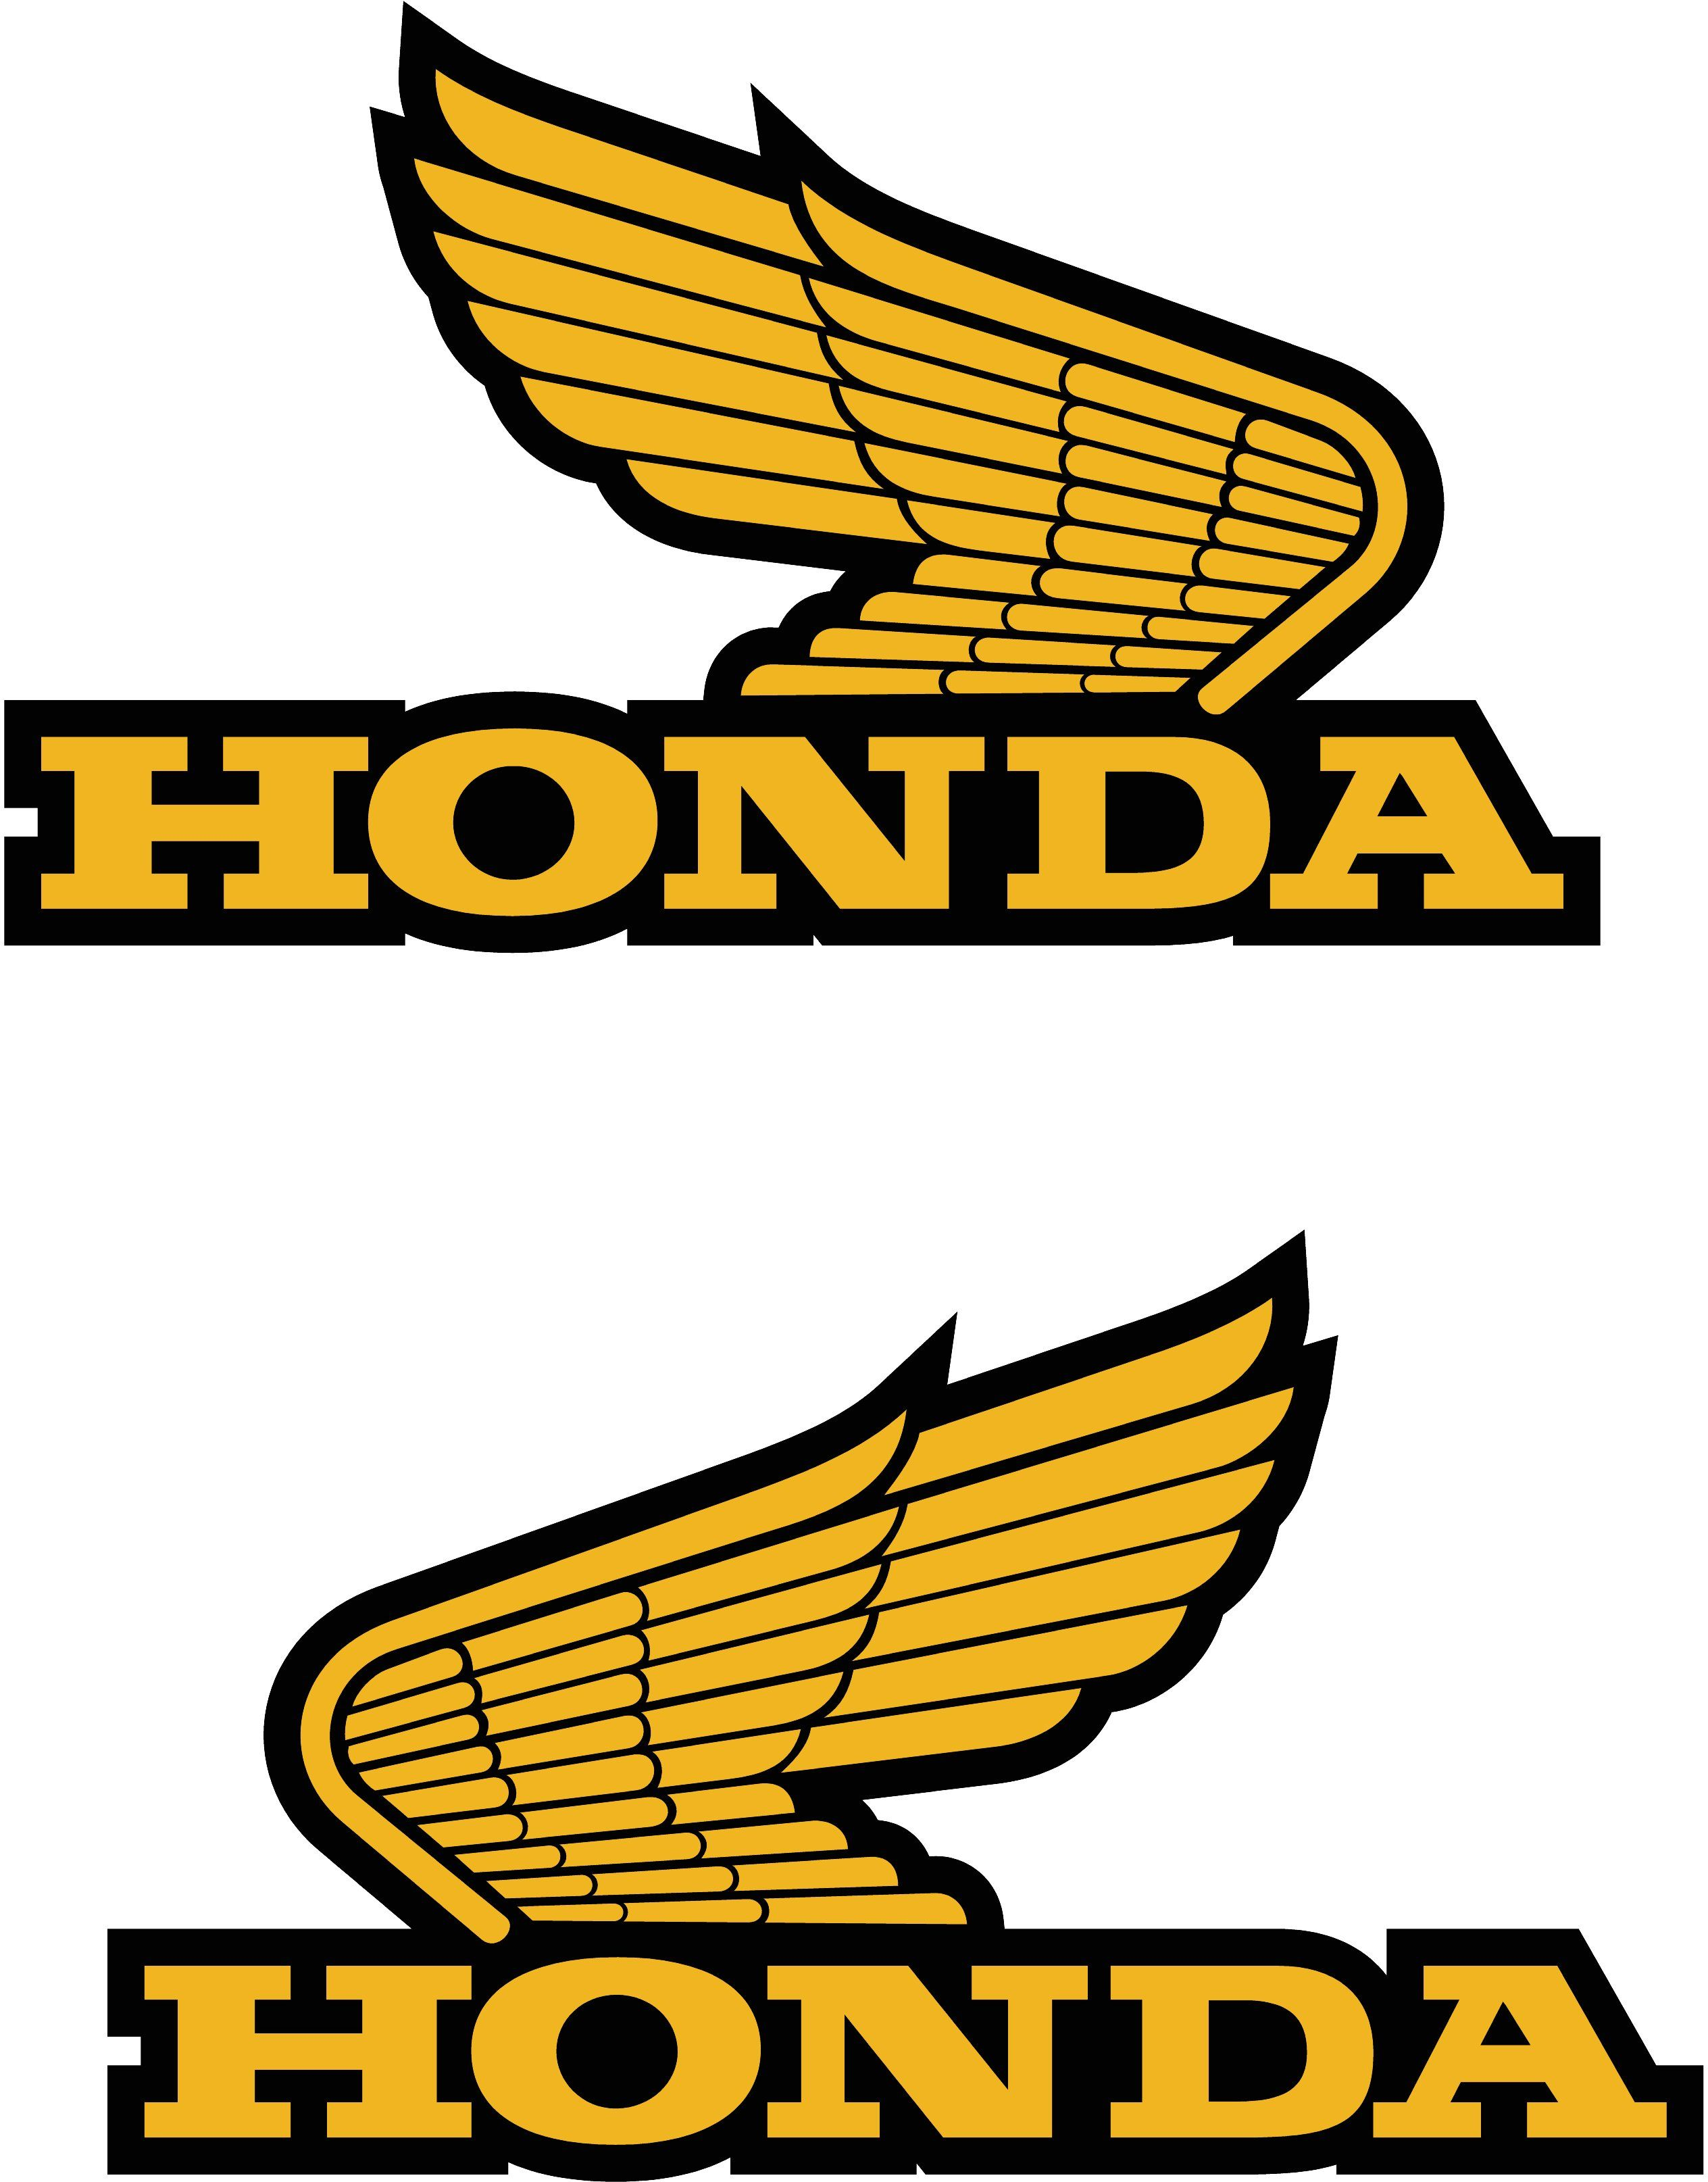 Pin By Sean White On Honda Is Best Pinterest Logo Yamaha Crypton Z Wiring Diagram Motorcycle And Motorbikes